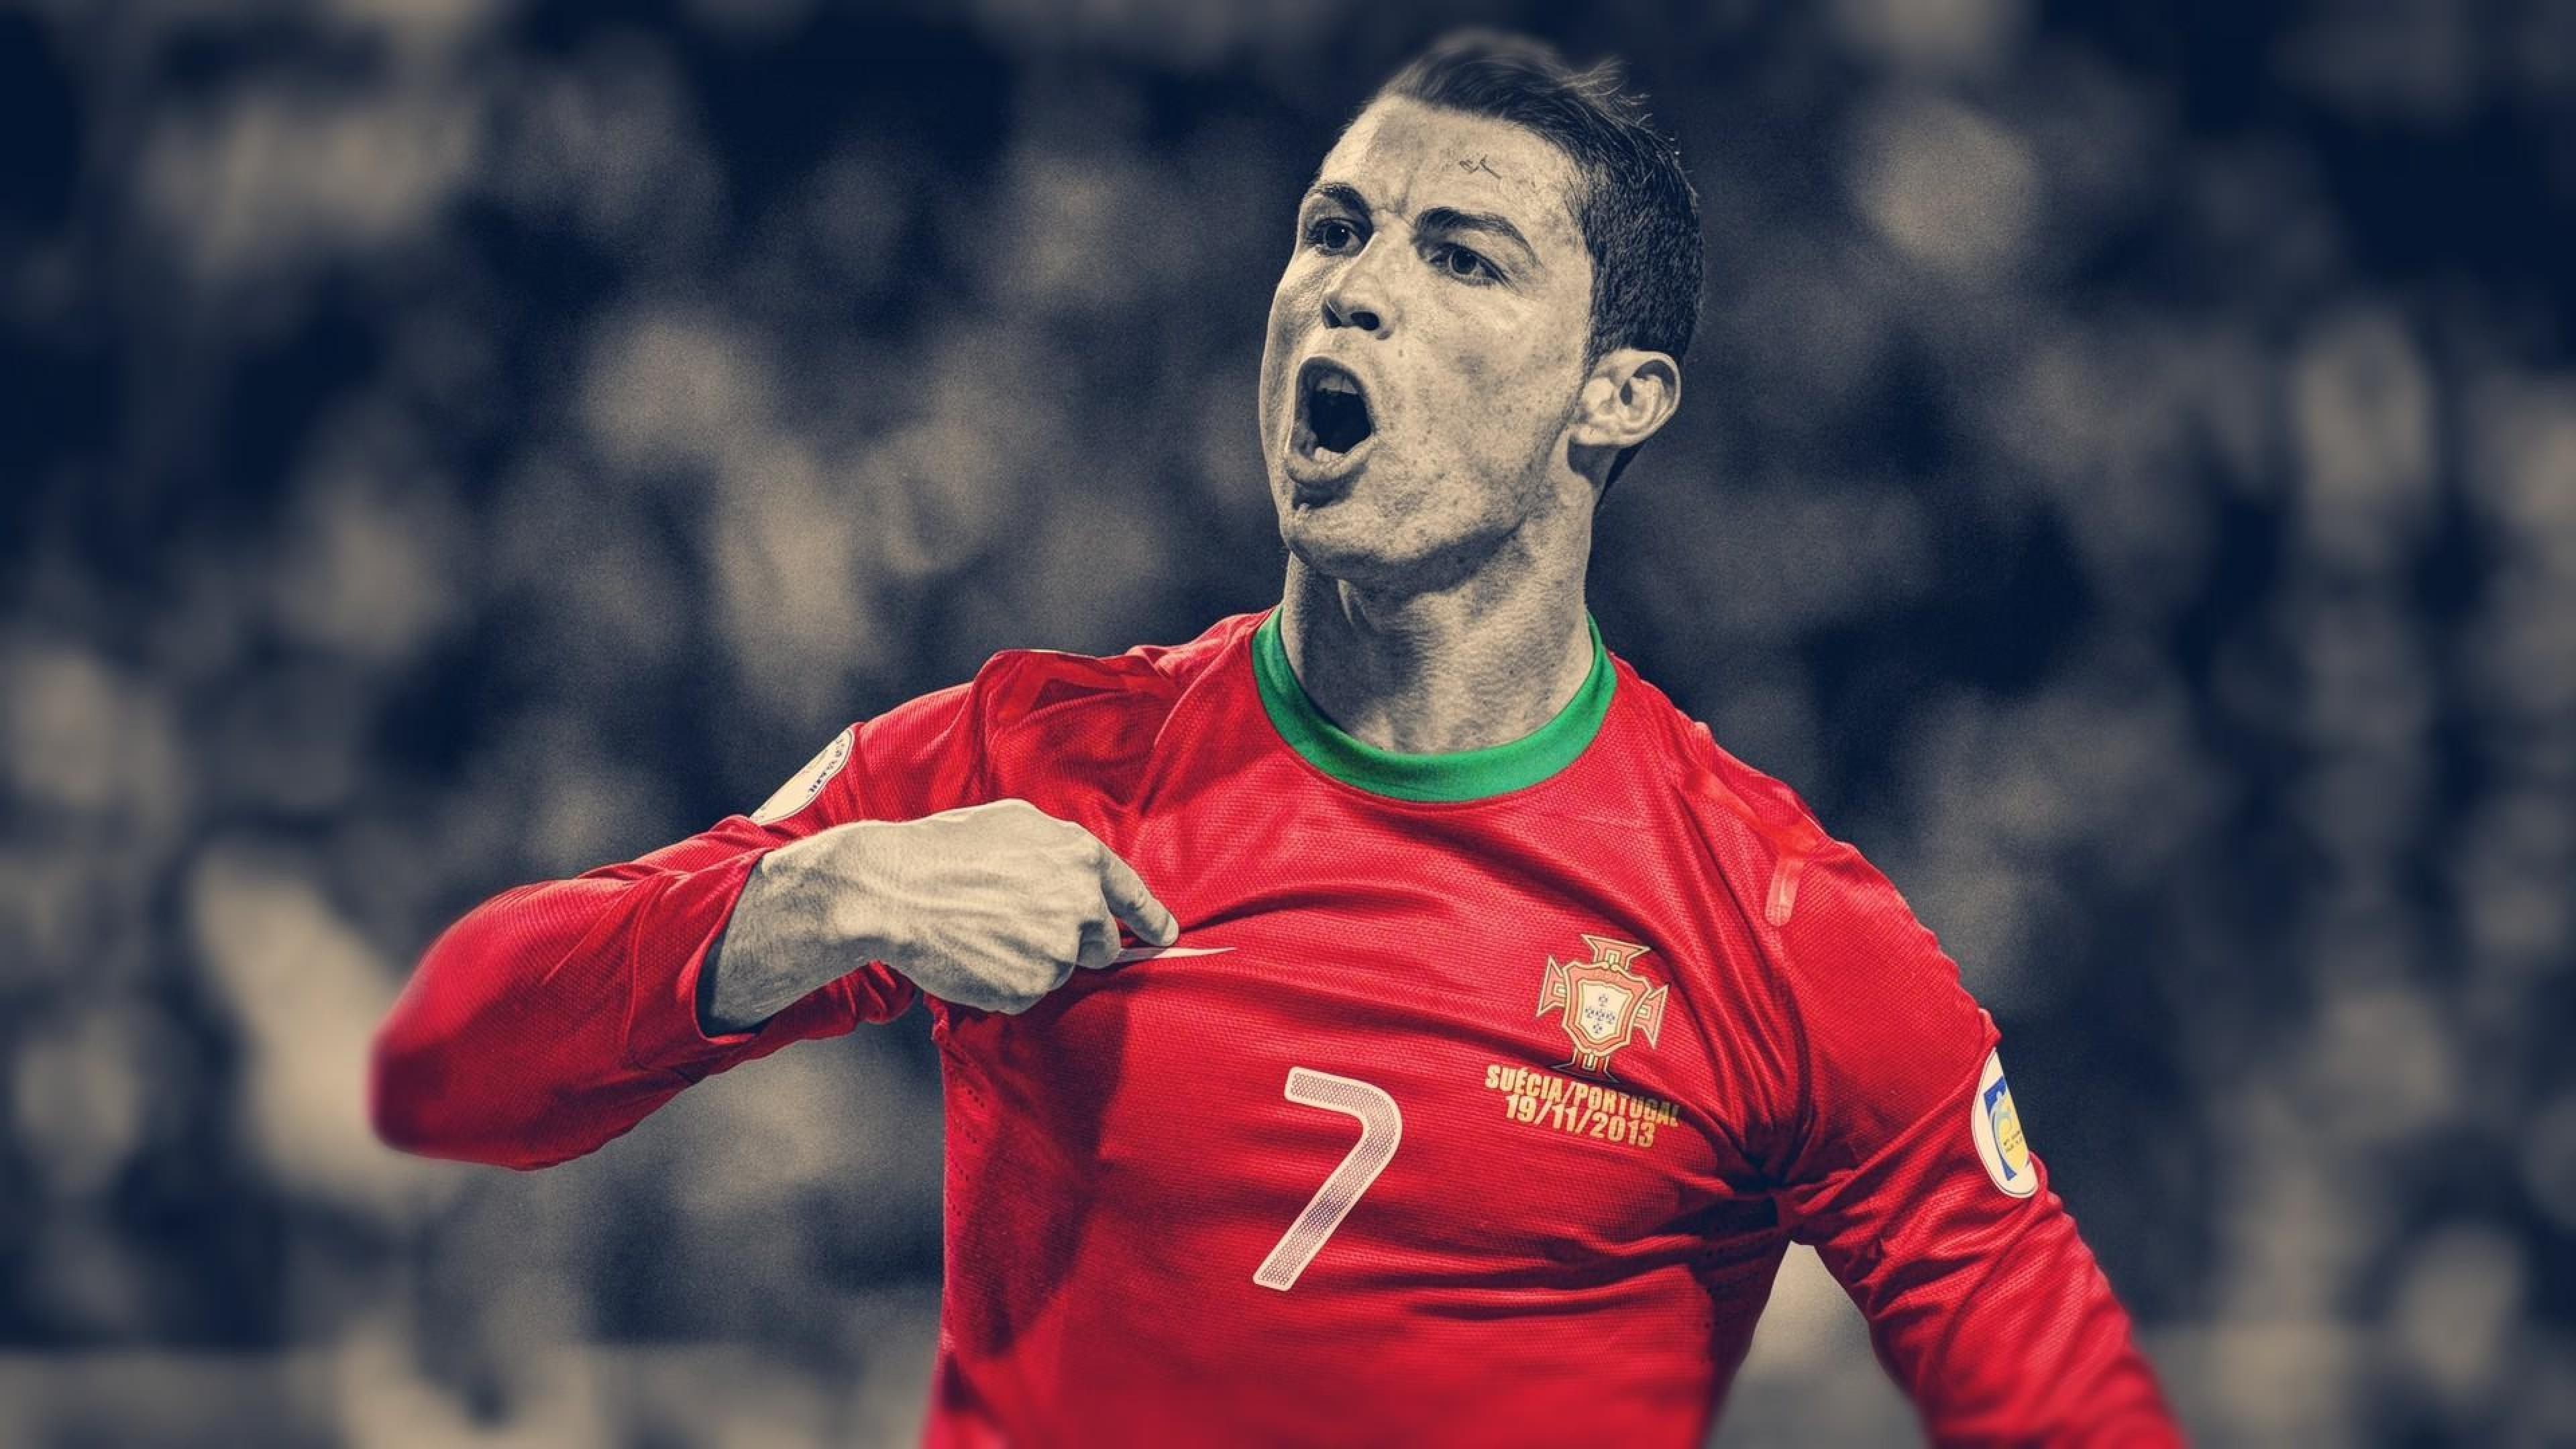 Cristiano Ronaldo Wallpapers Images Photos Pictures Backgrounds